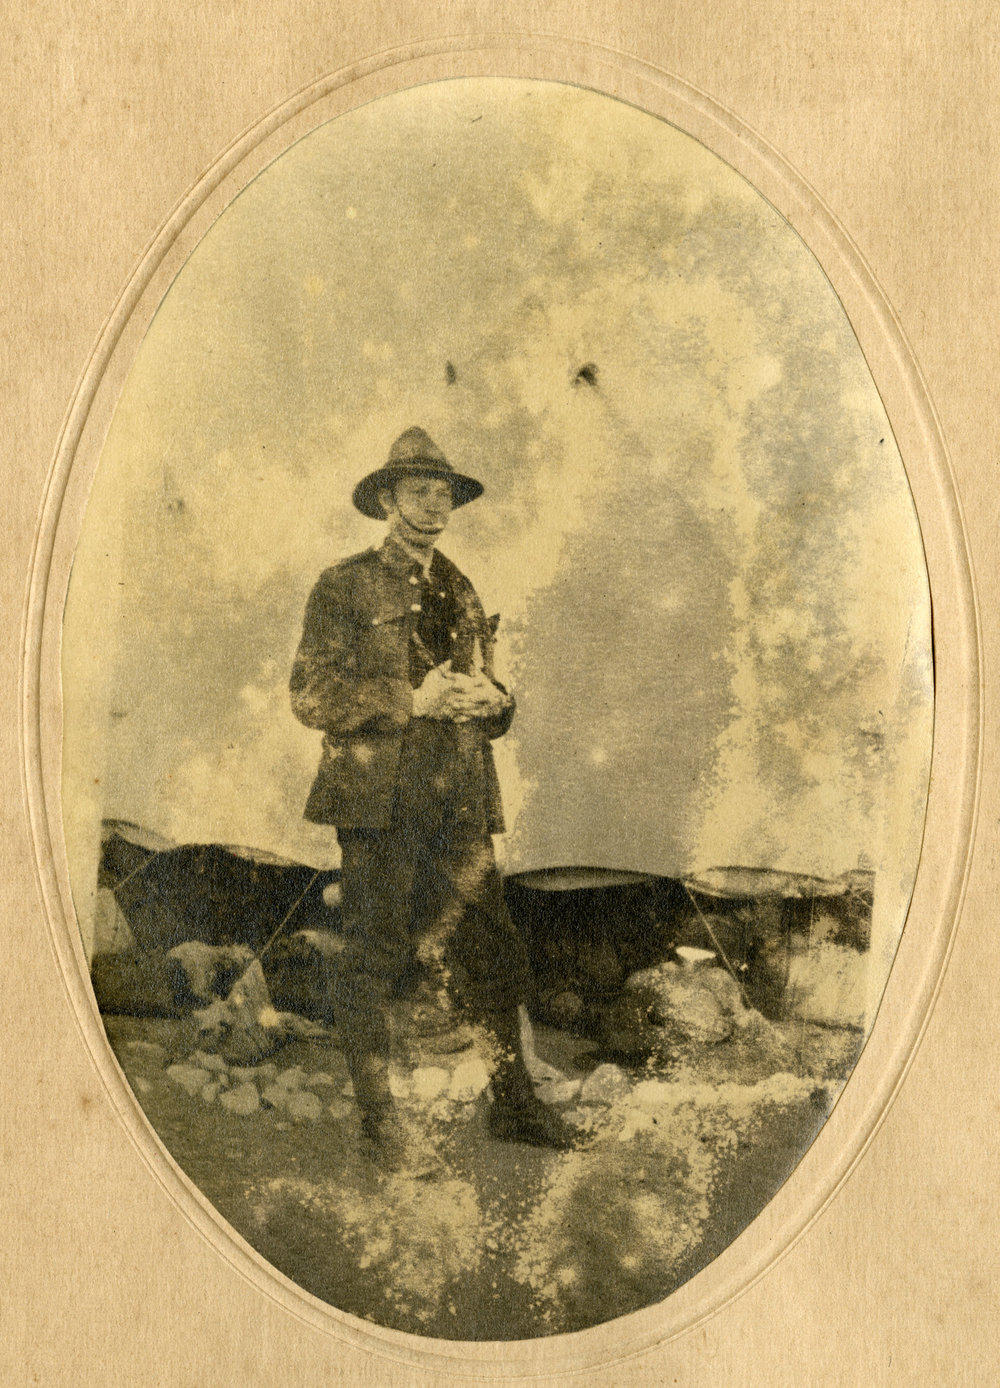 H.H. Mackrell in Egypt, prior to Gallipoli